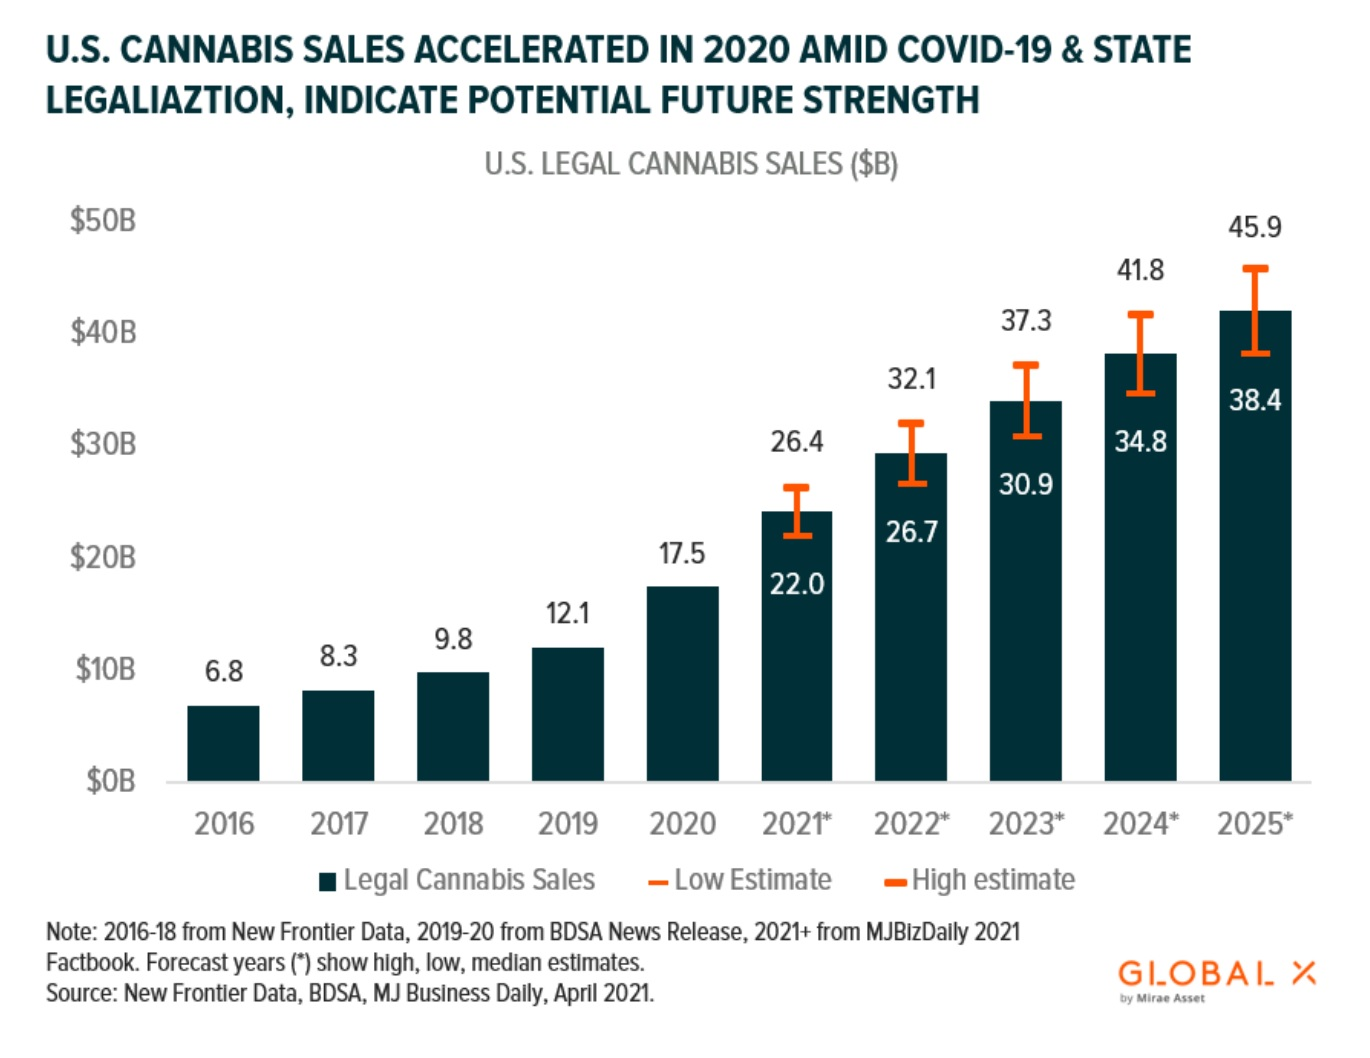 US retail cannabis sales continue to increase